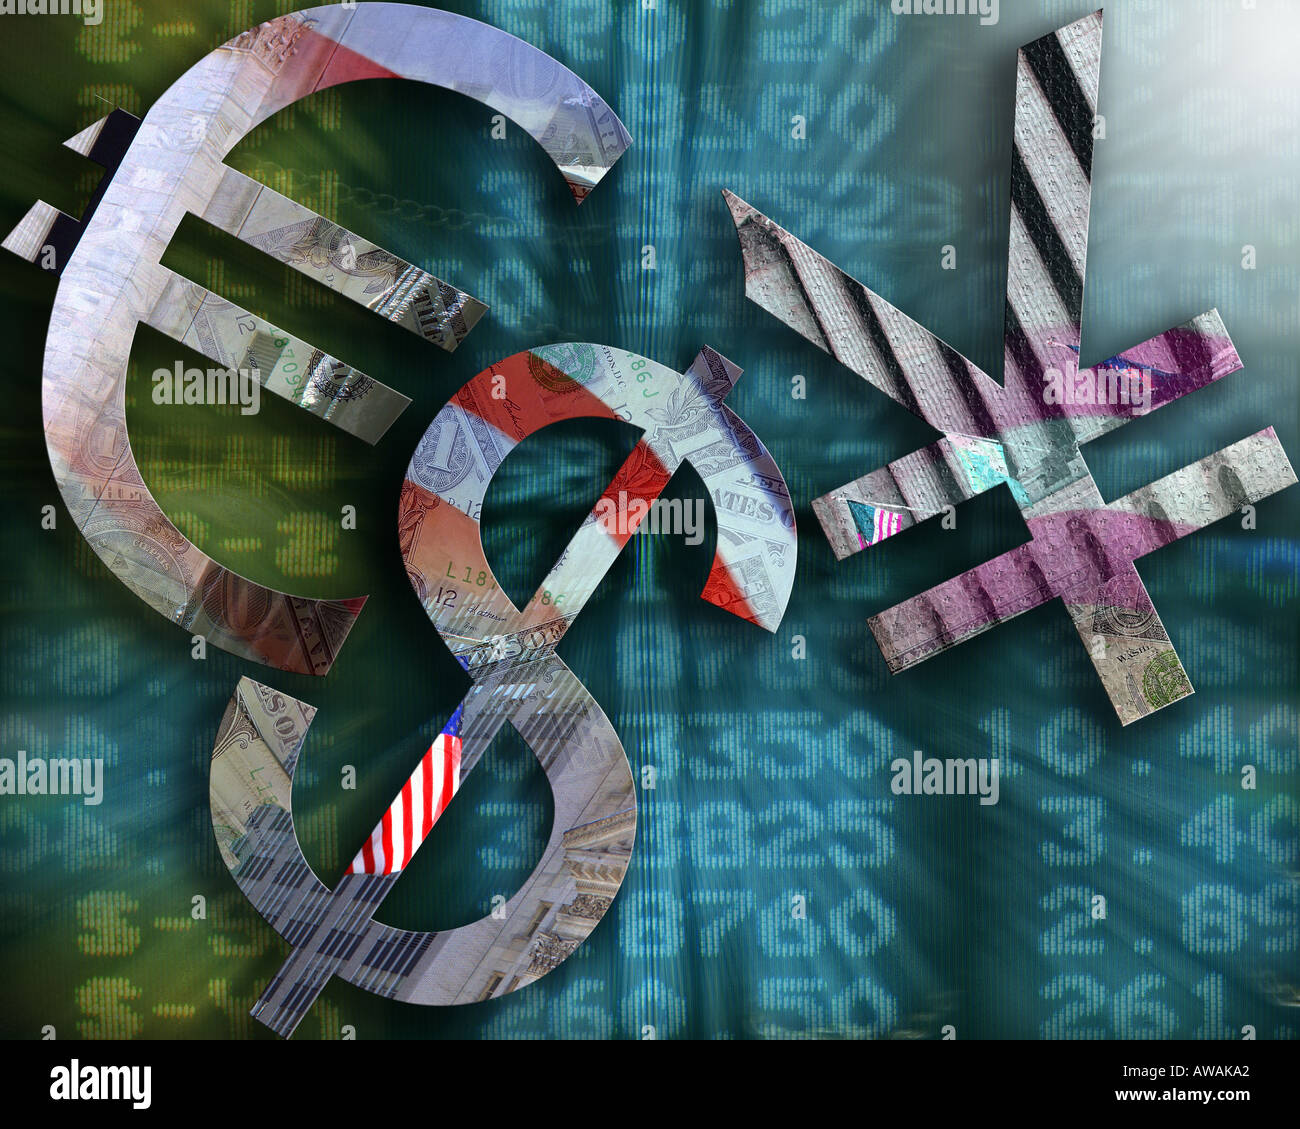 FINANCIAL CONCEPT:  International Currency Market - Stock Image